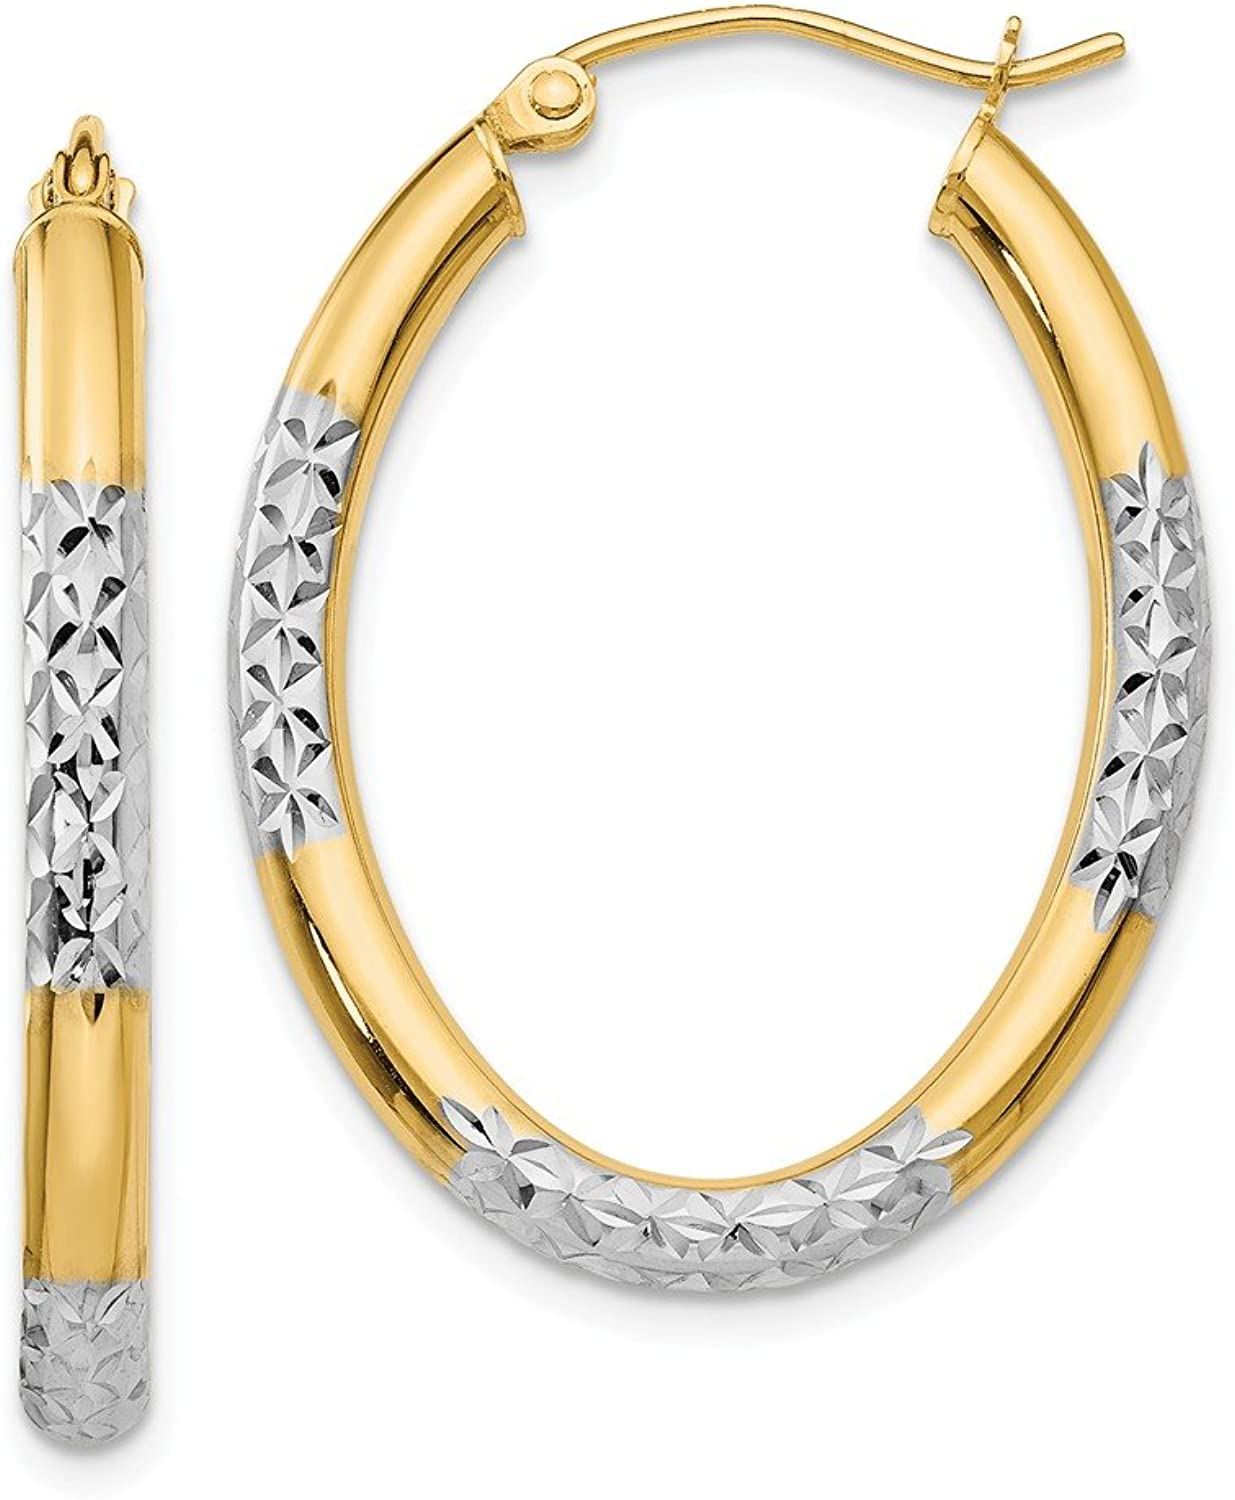 Beautiful rhodium plated gold and silver 14K 14K & Rhodium 3mm Diamond Cut Oval Hollow Hoop Earrings